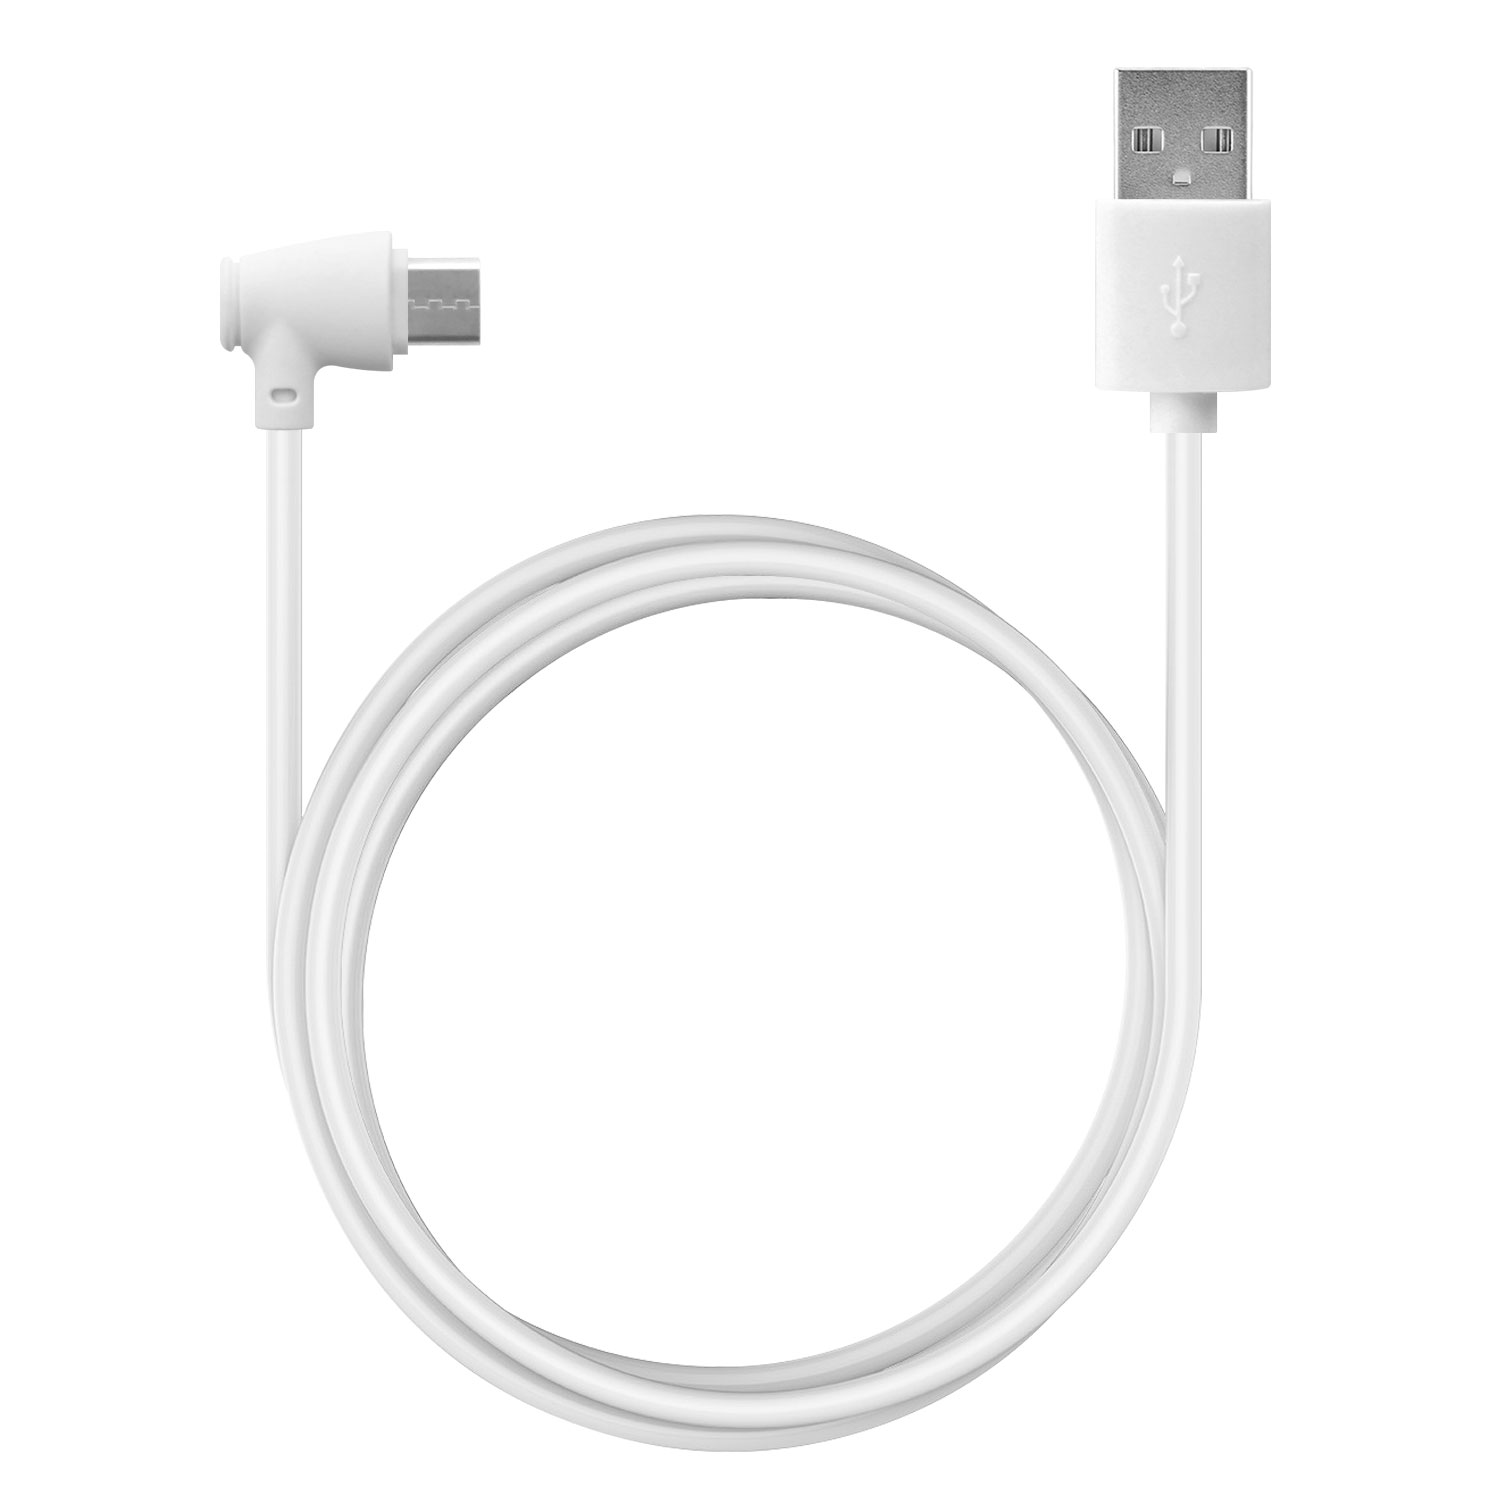 Samsung Galaxy S10 Plus USB Type-C To USB Type-A Data Charging Cable White 3.3ft Angled